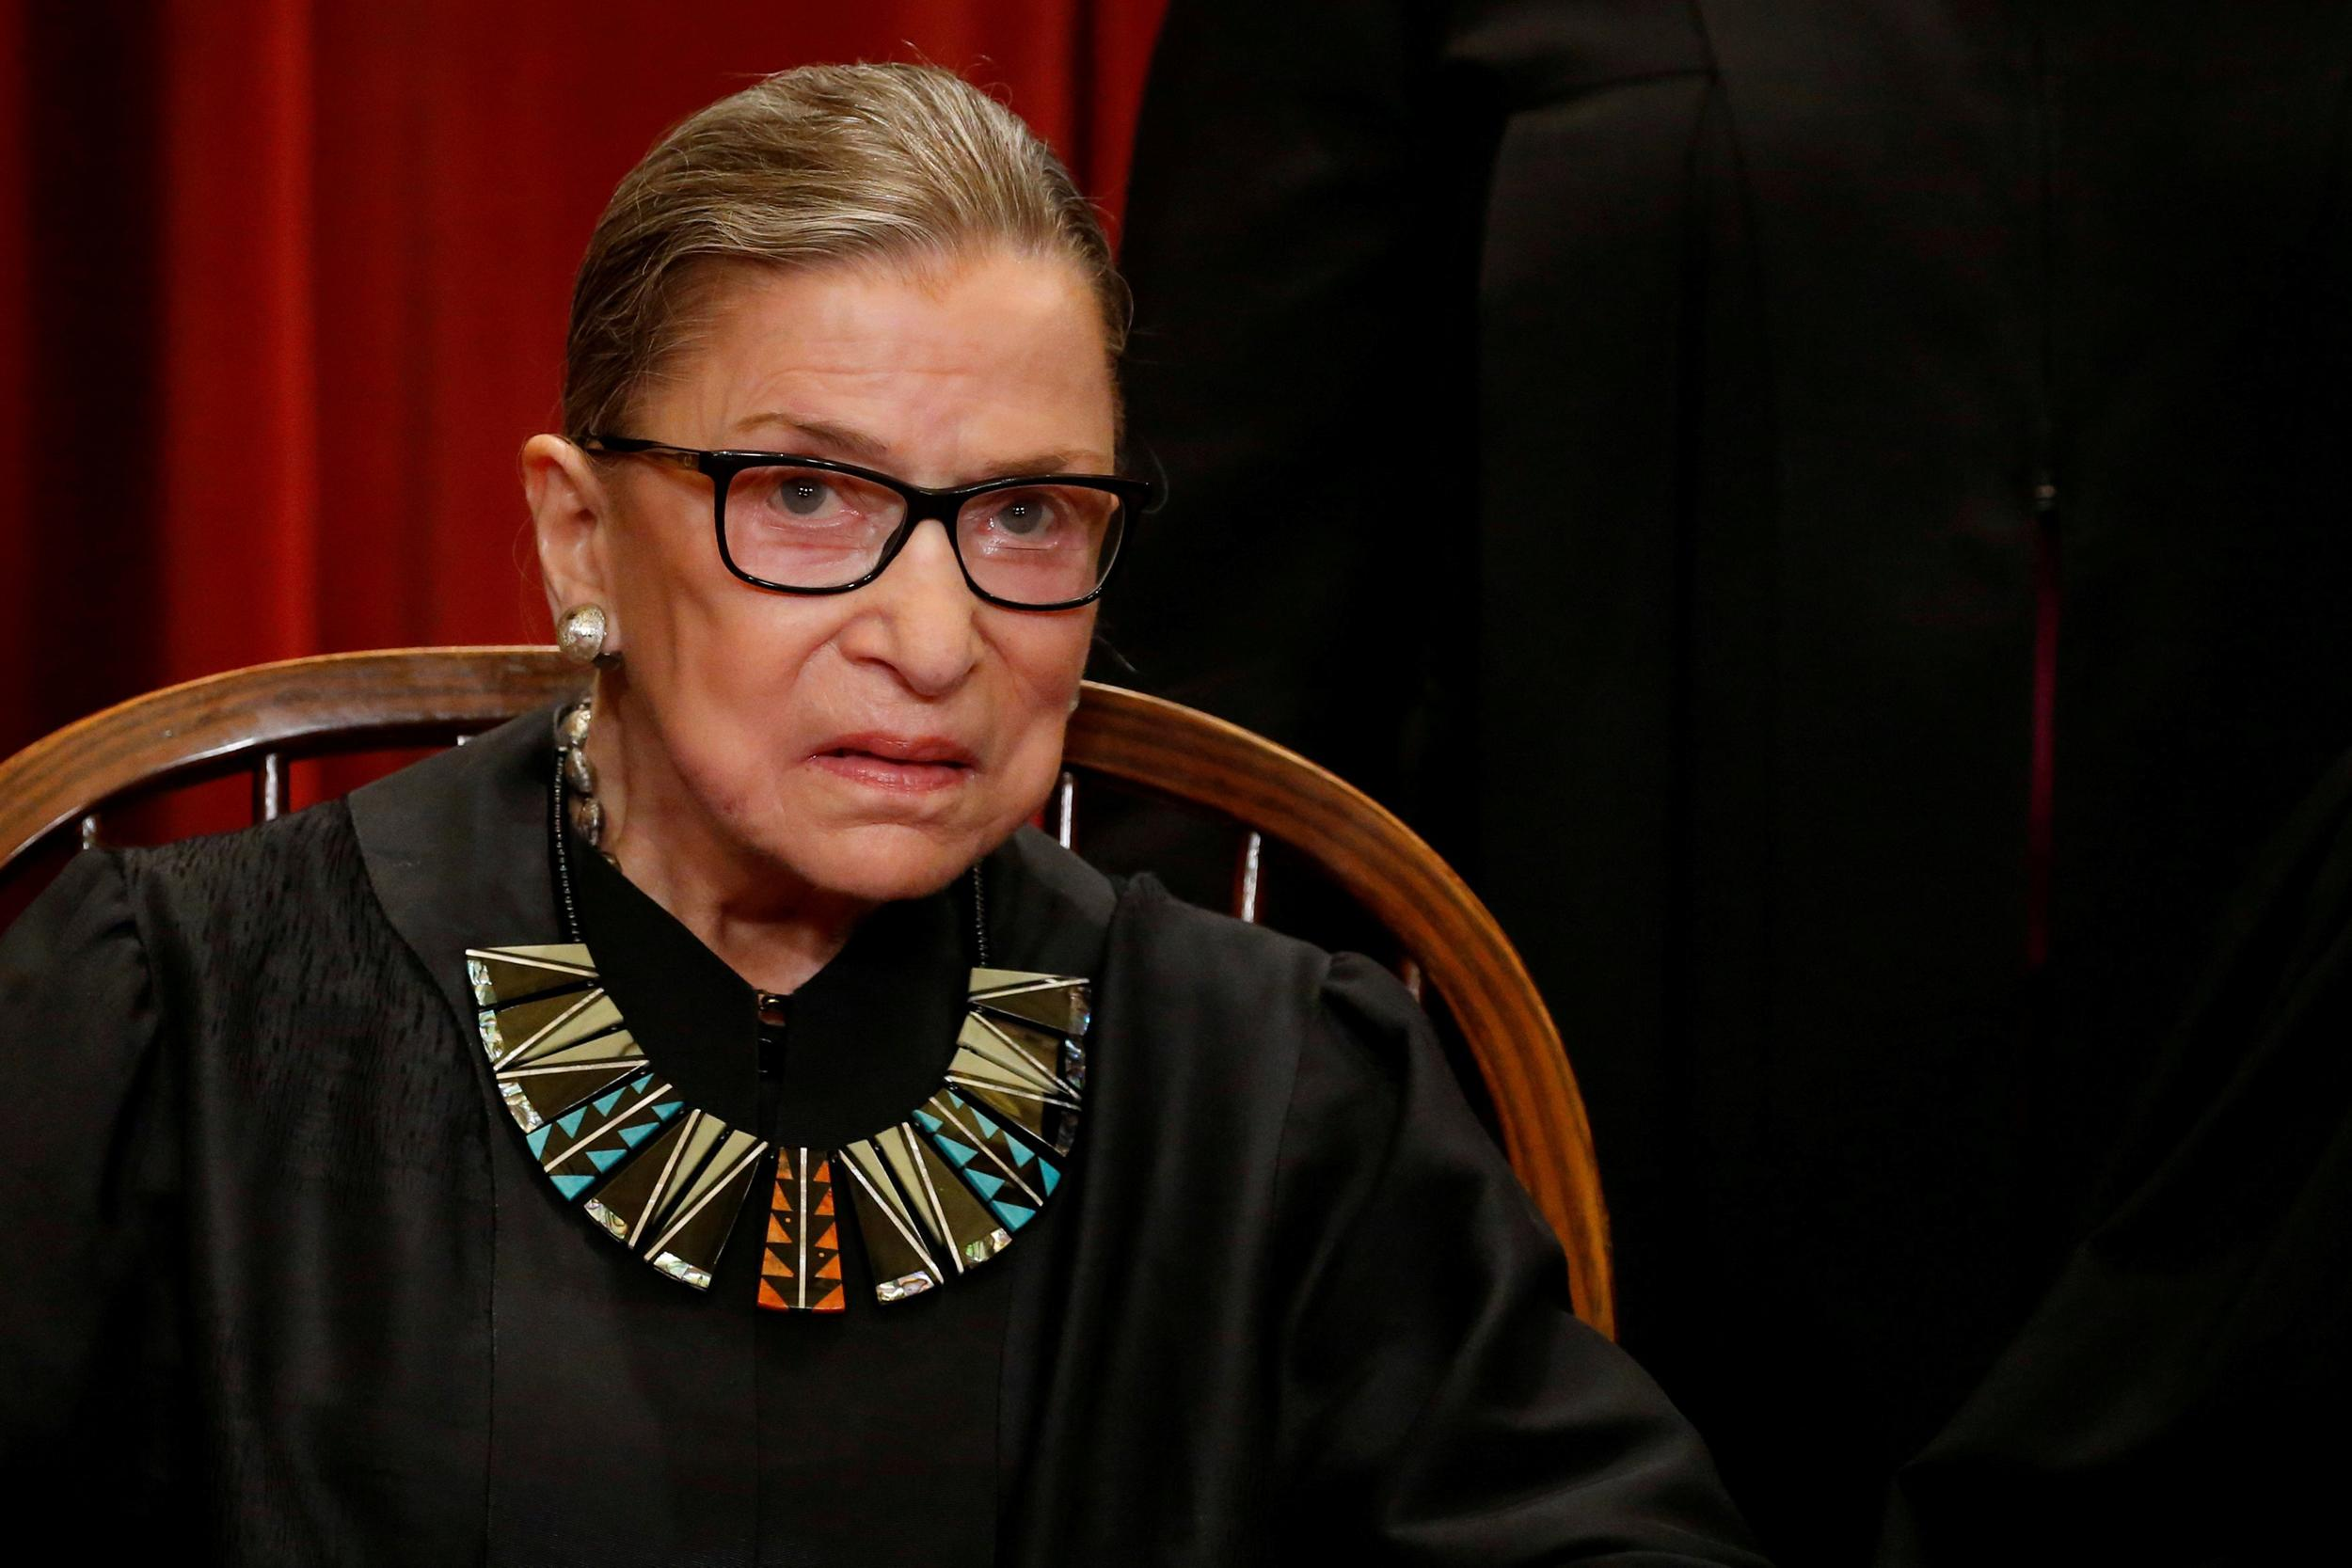 Supreme Court Justice Ruth Bader Ginsburg hospitalized with infection